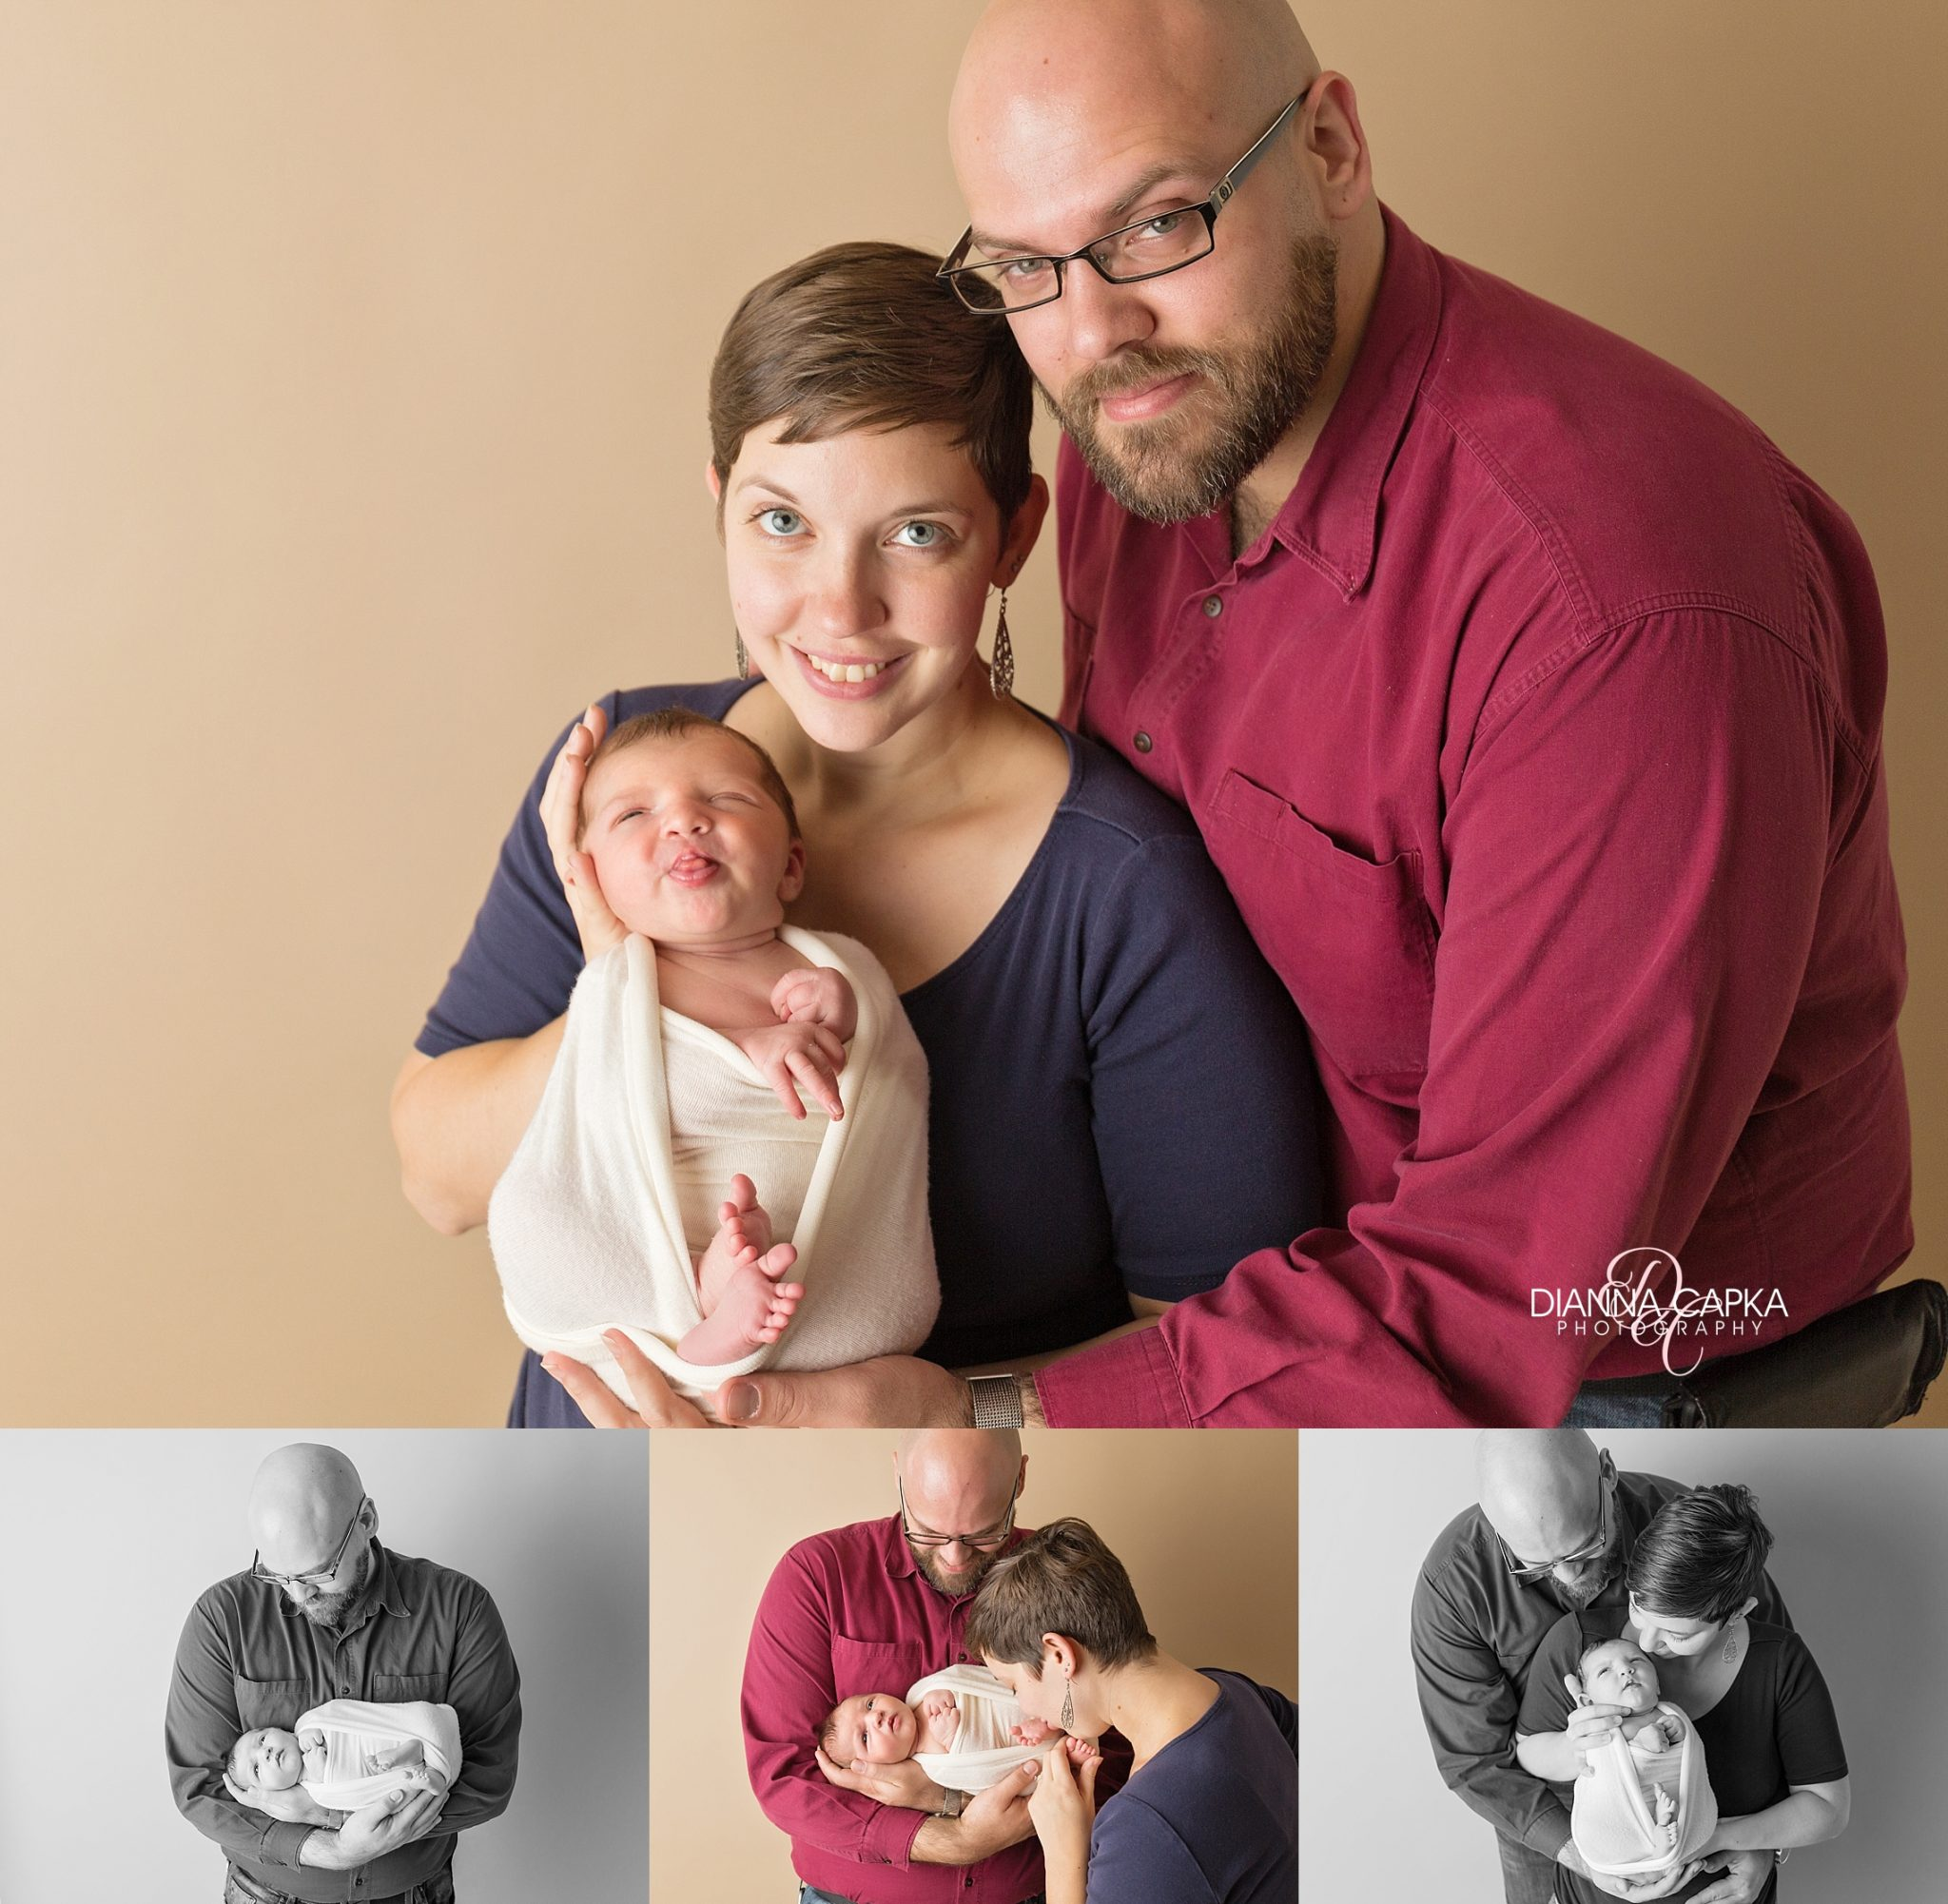 newborn bloopers, baby making goofy faces